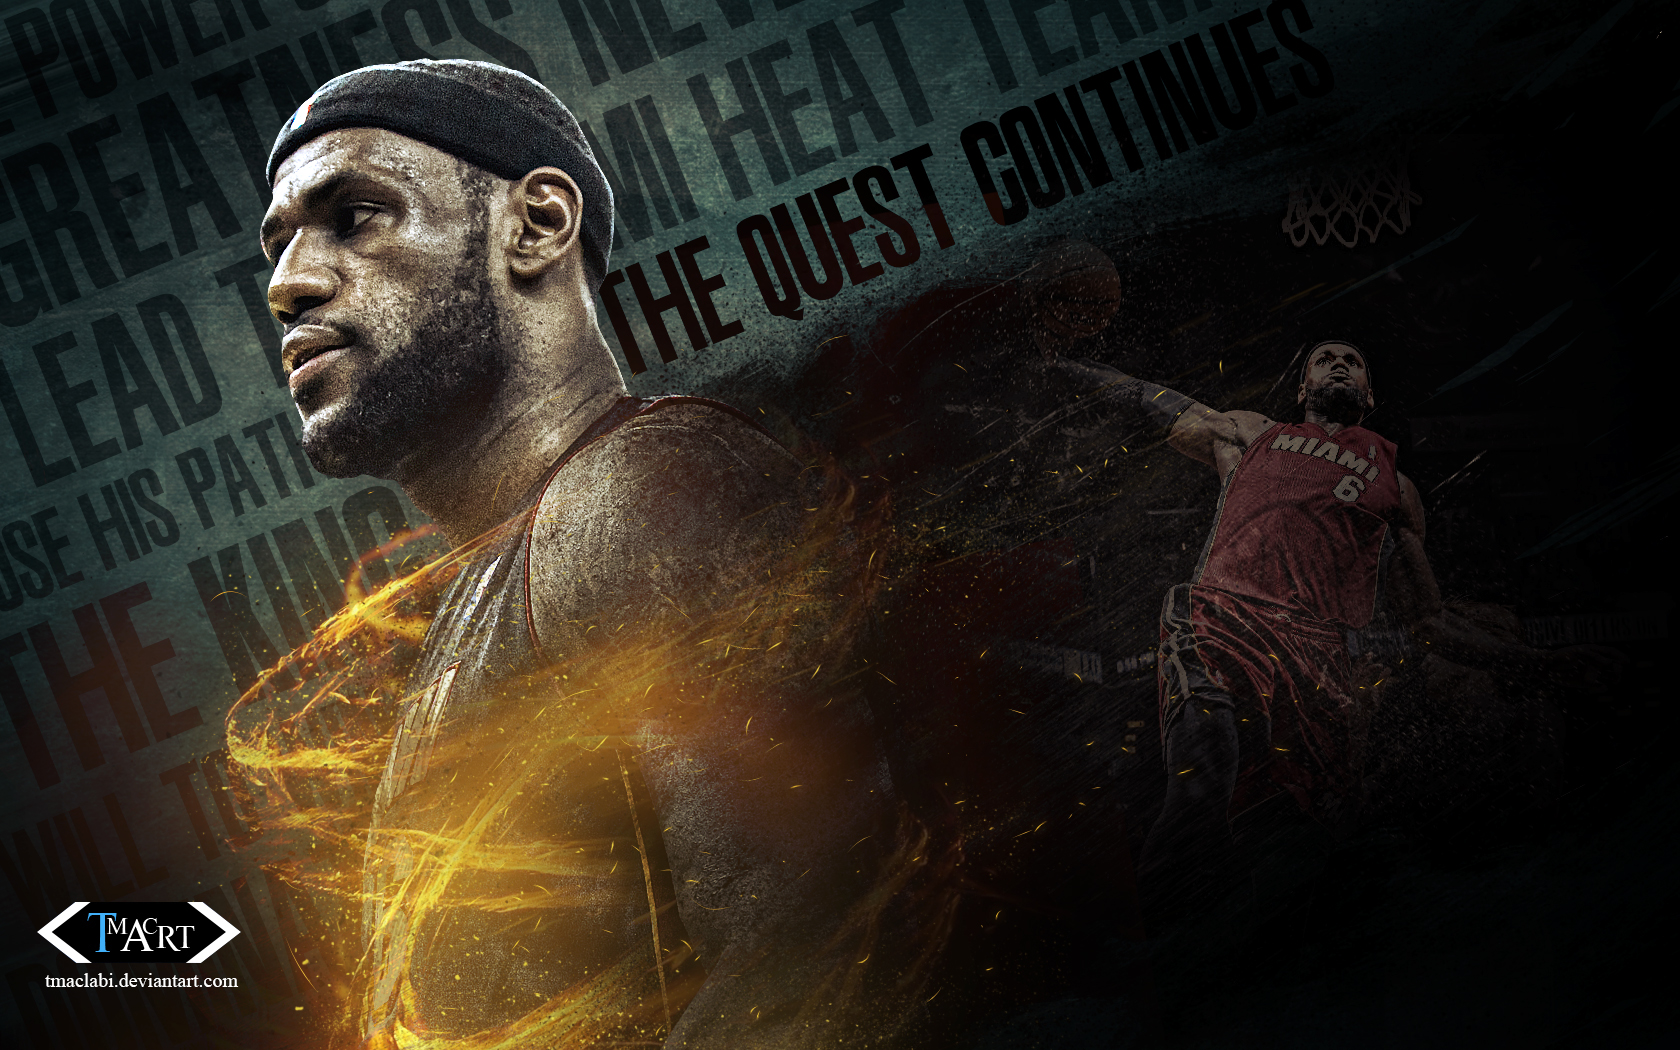 Simple Wallpaper Mac Lebron James - lebron_james_the_quest_continues_wallpaper_by_tmaclabi-d7rgtsi  Image_18762.jpg